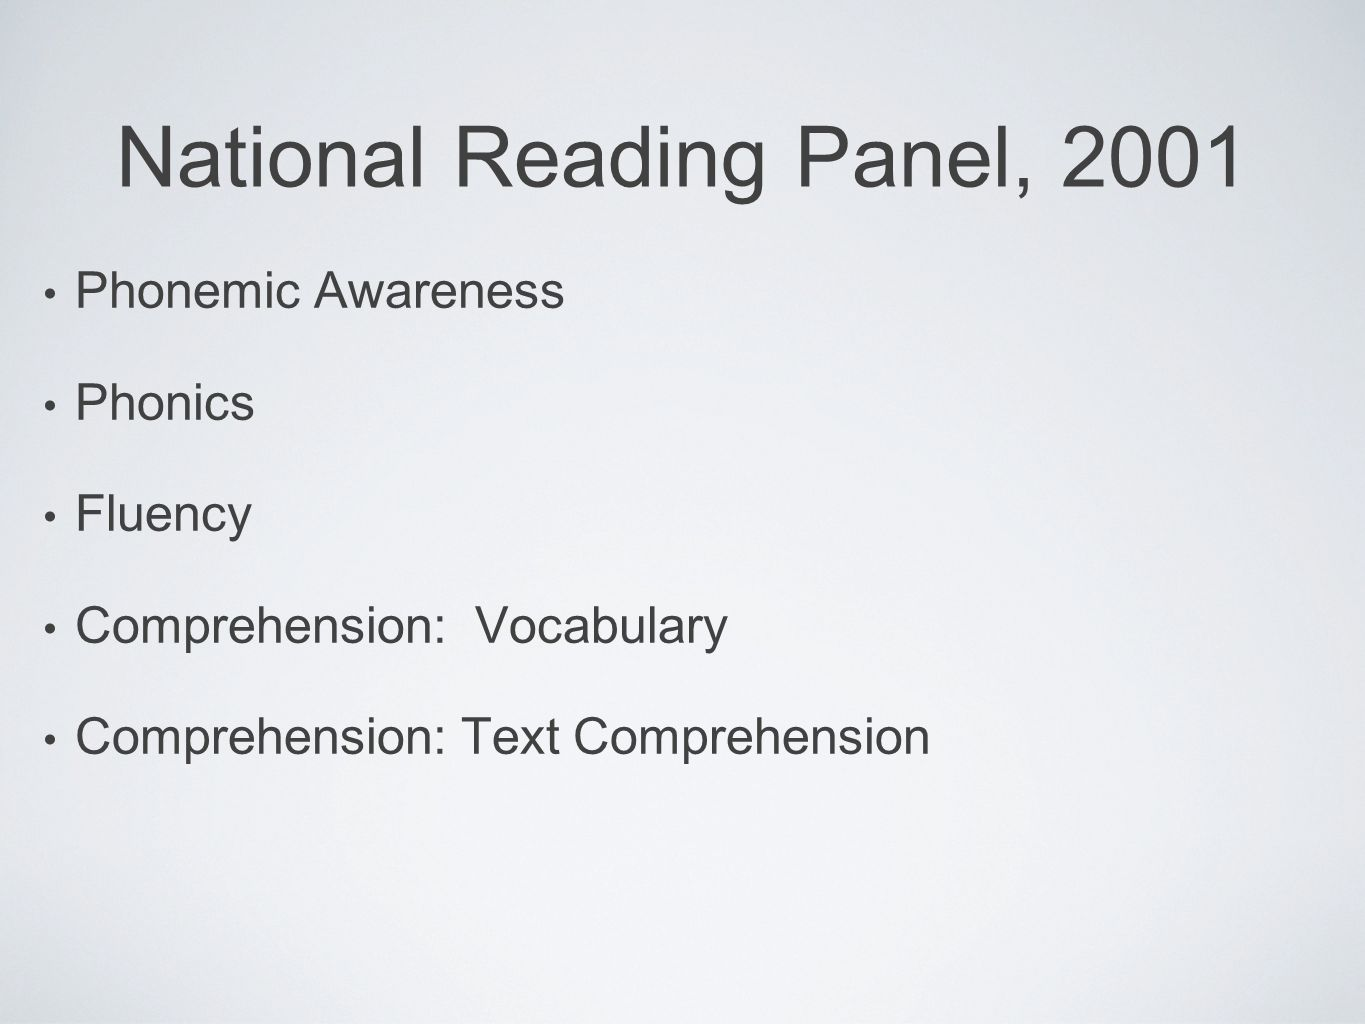 National Reading Panel, 2001 Phonemic Awareness Phonics Fluency Comprehension: Vocabulary Comprehension: Text Comprehension